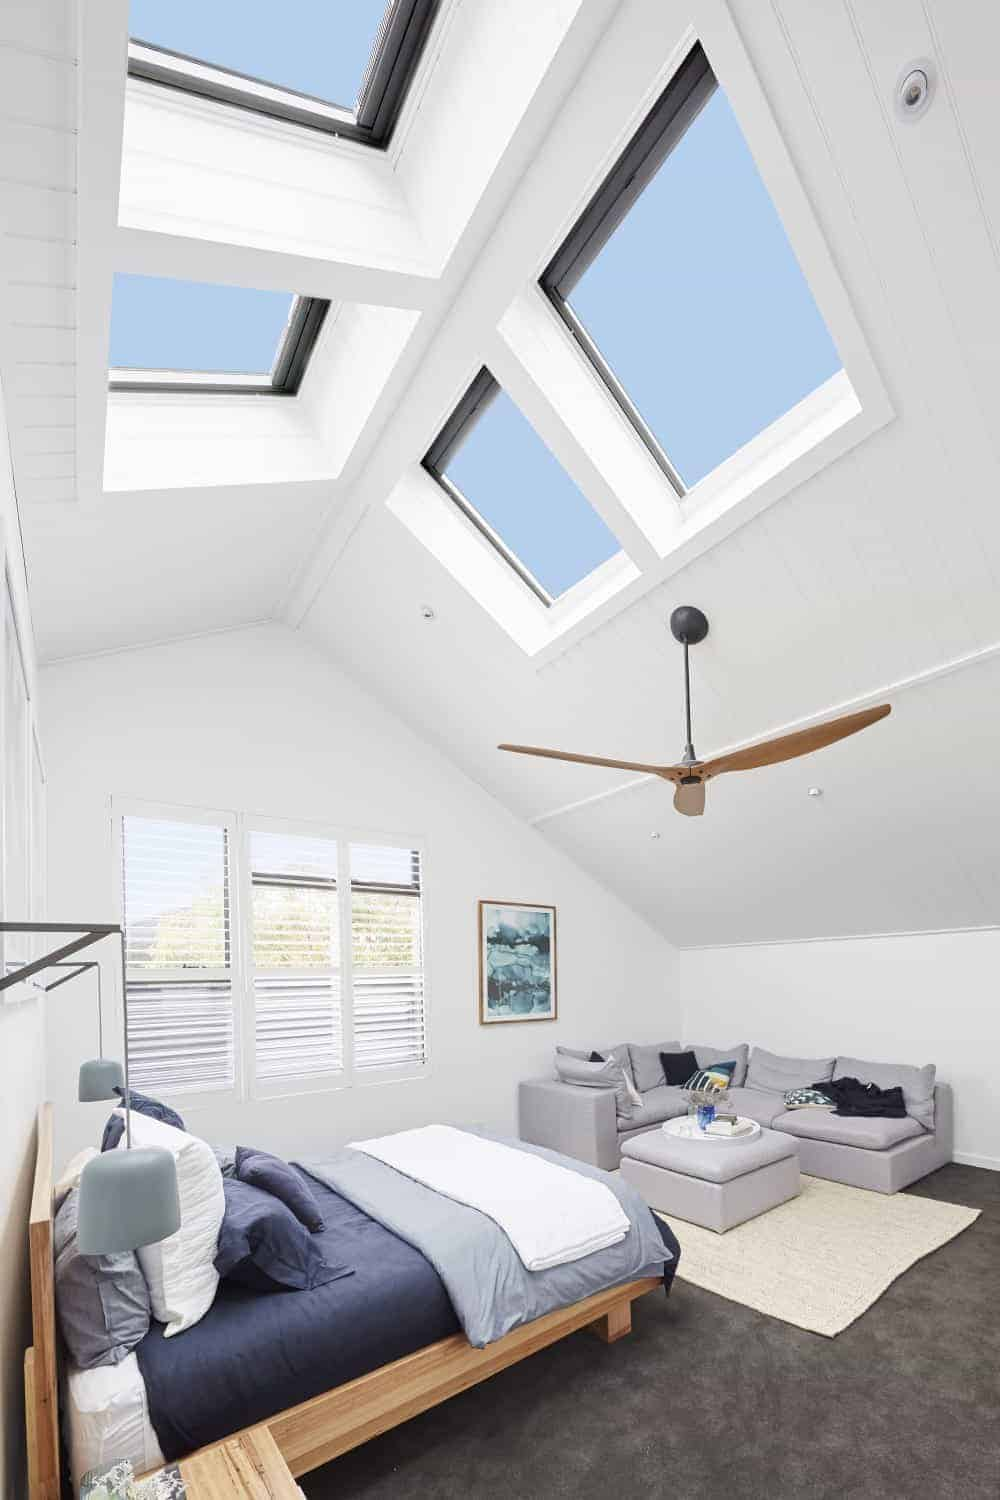 We offer skylight types to suit every application